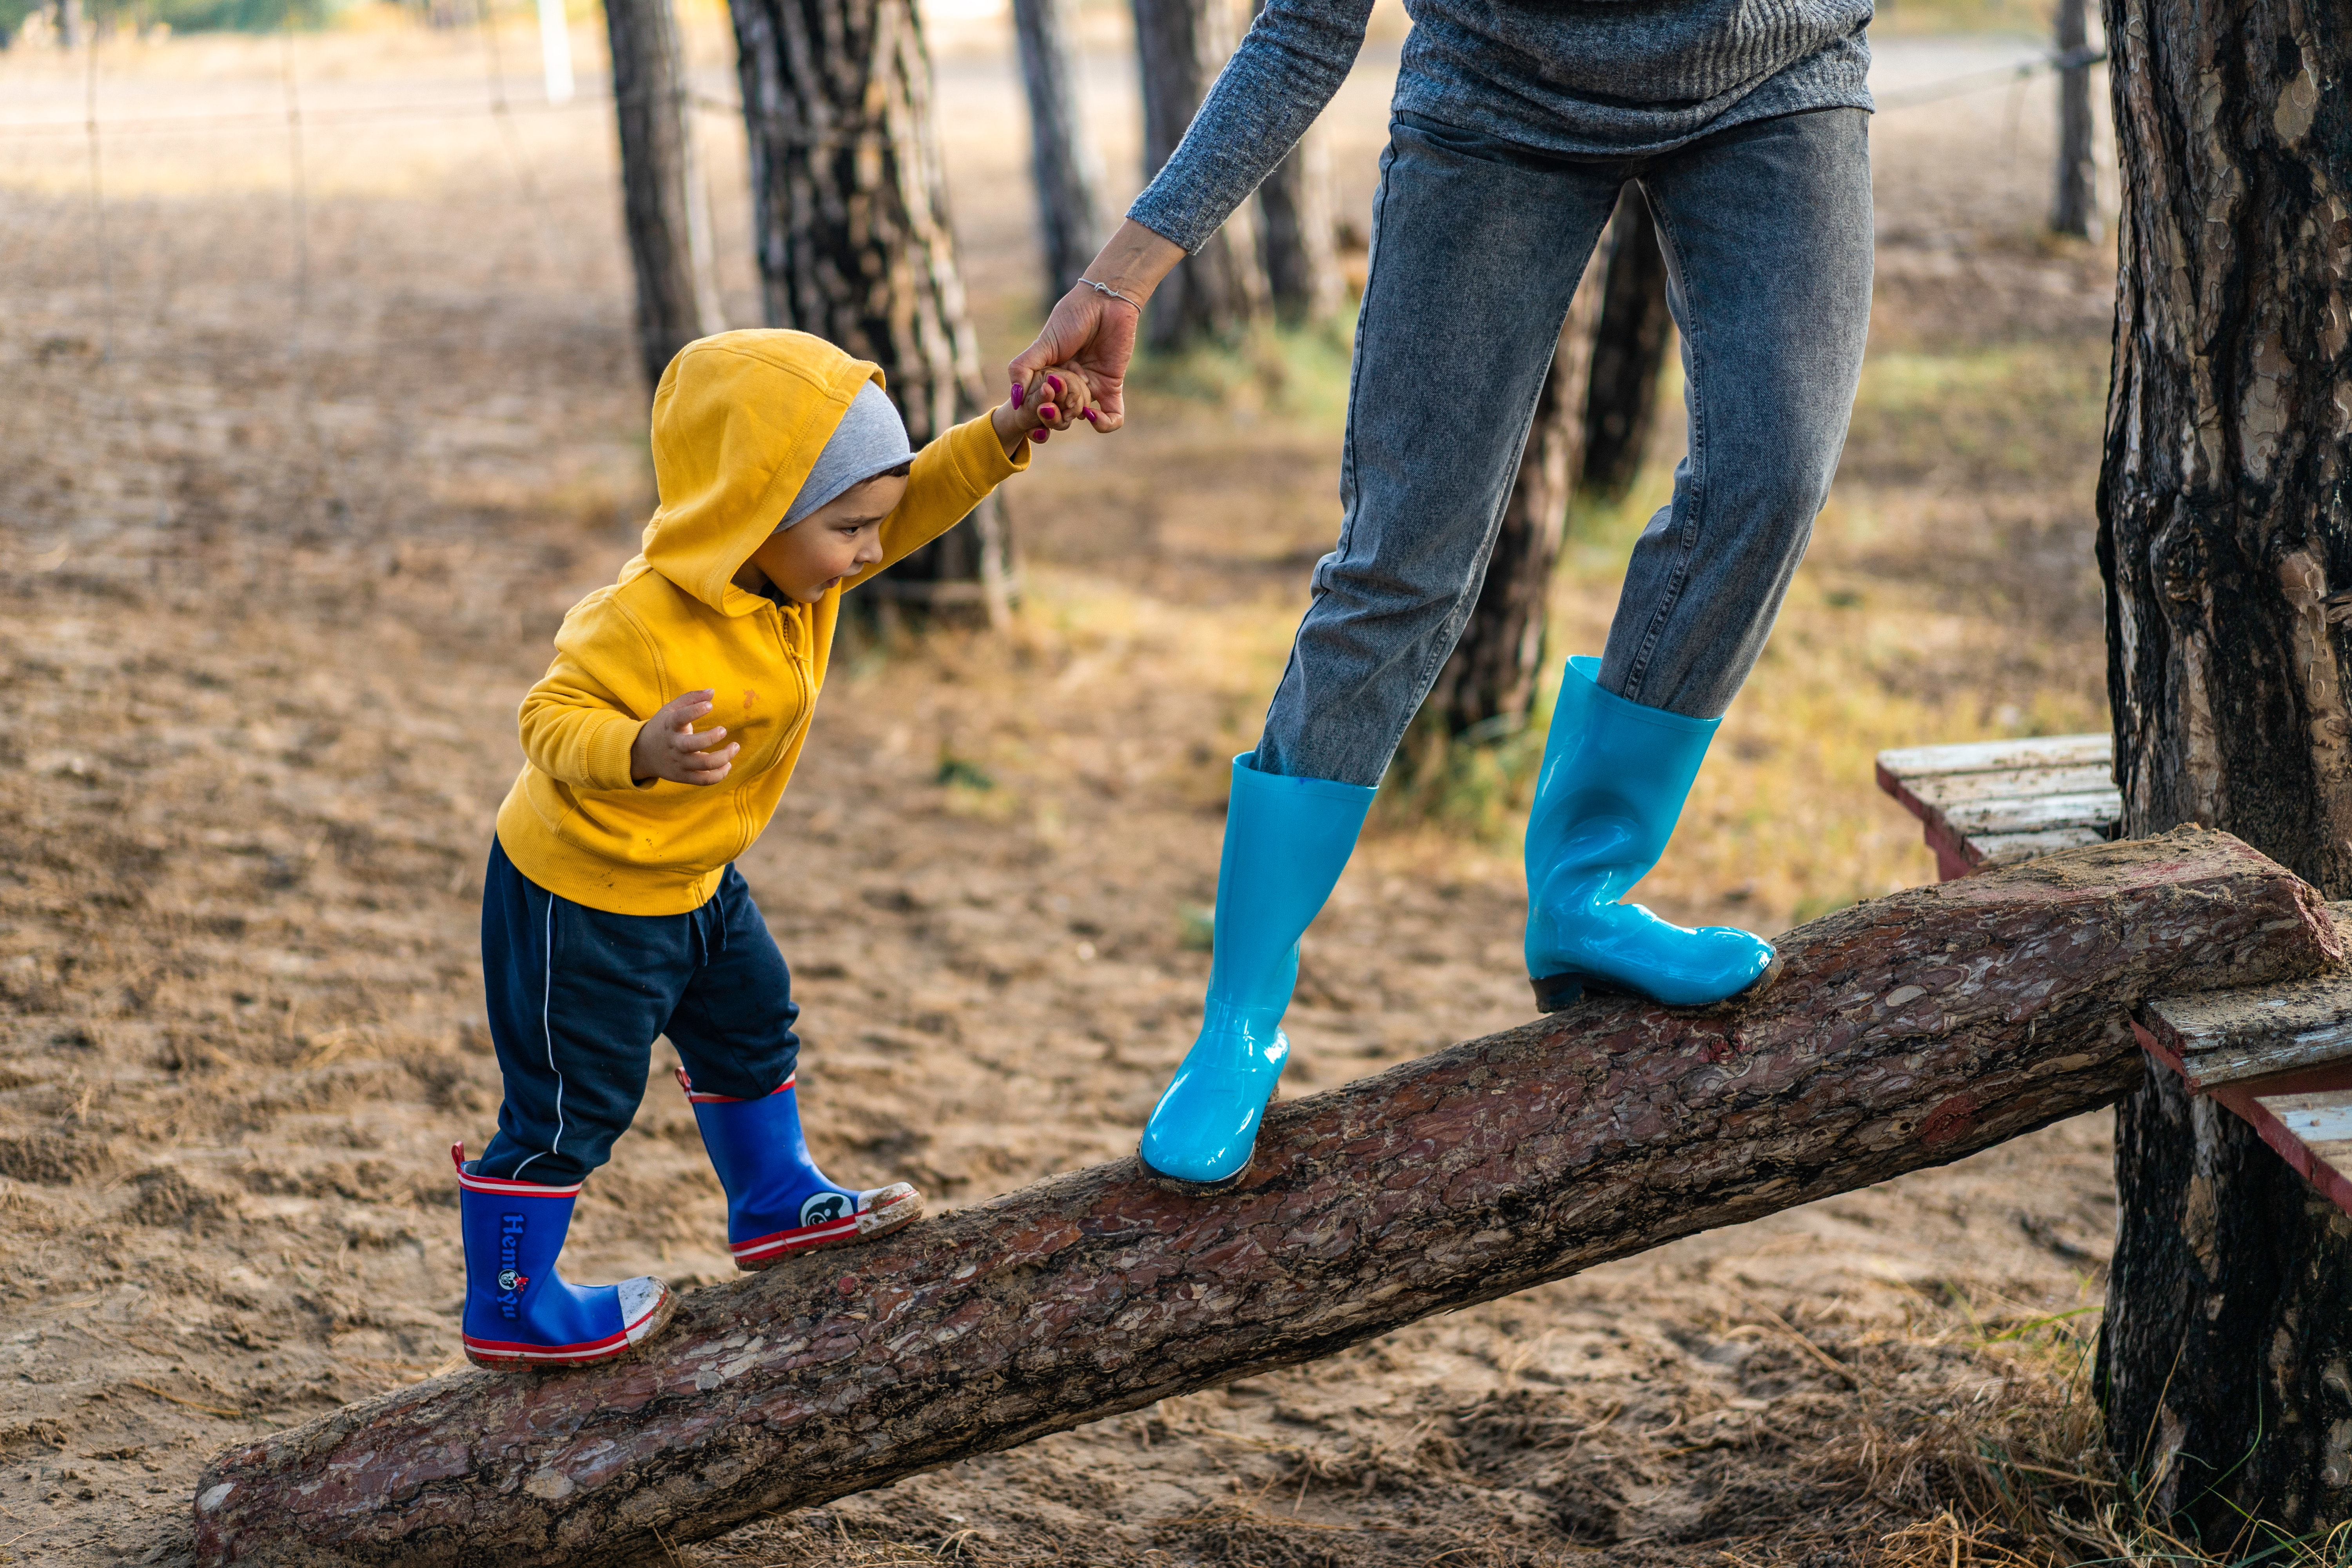 RVing with Kids - Safety Tips